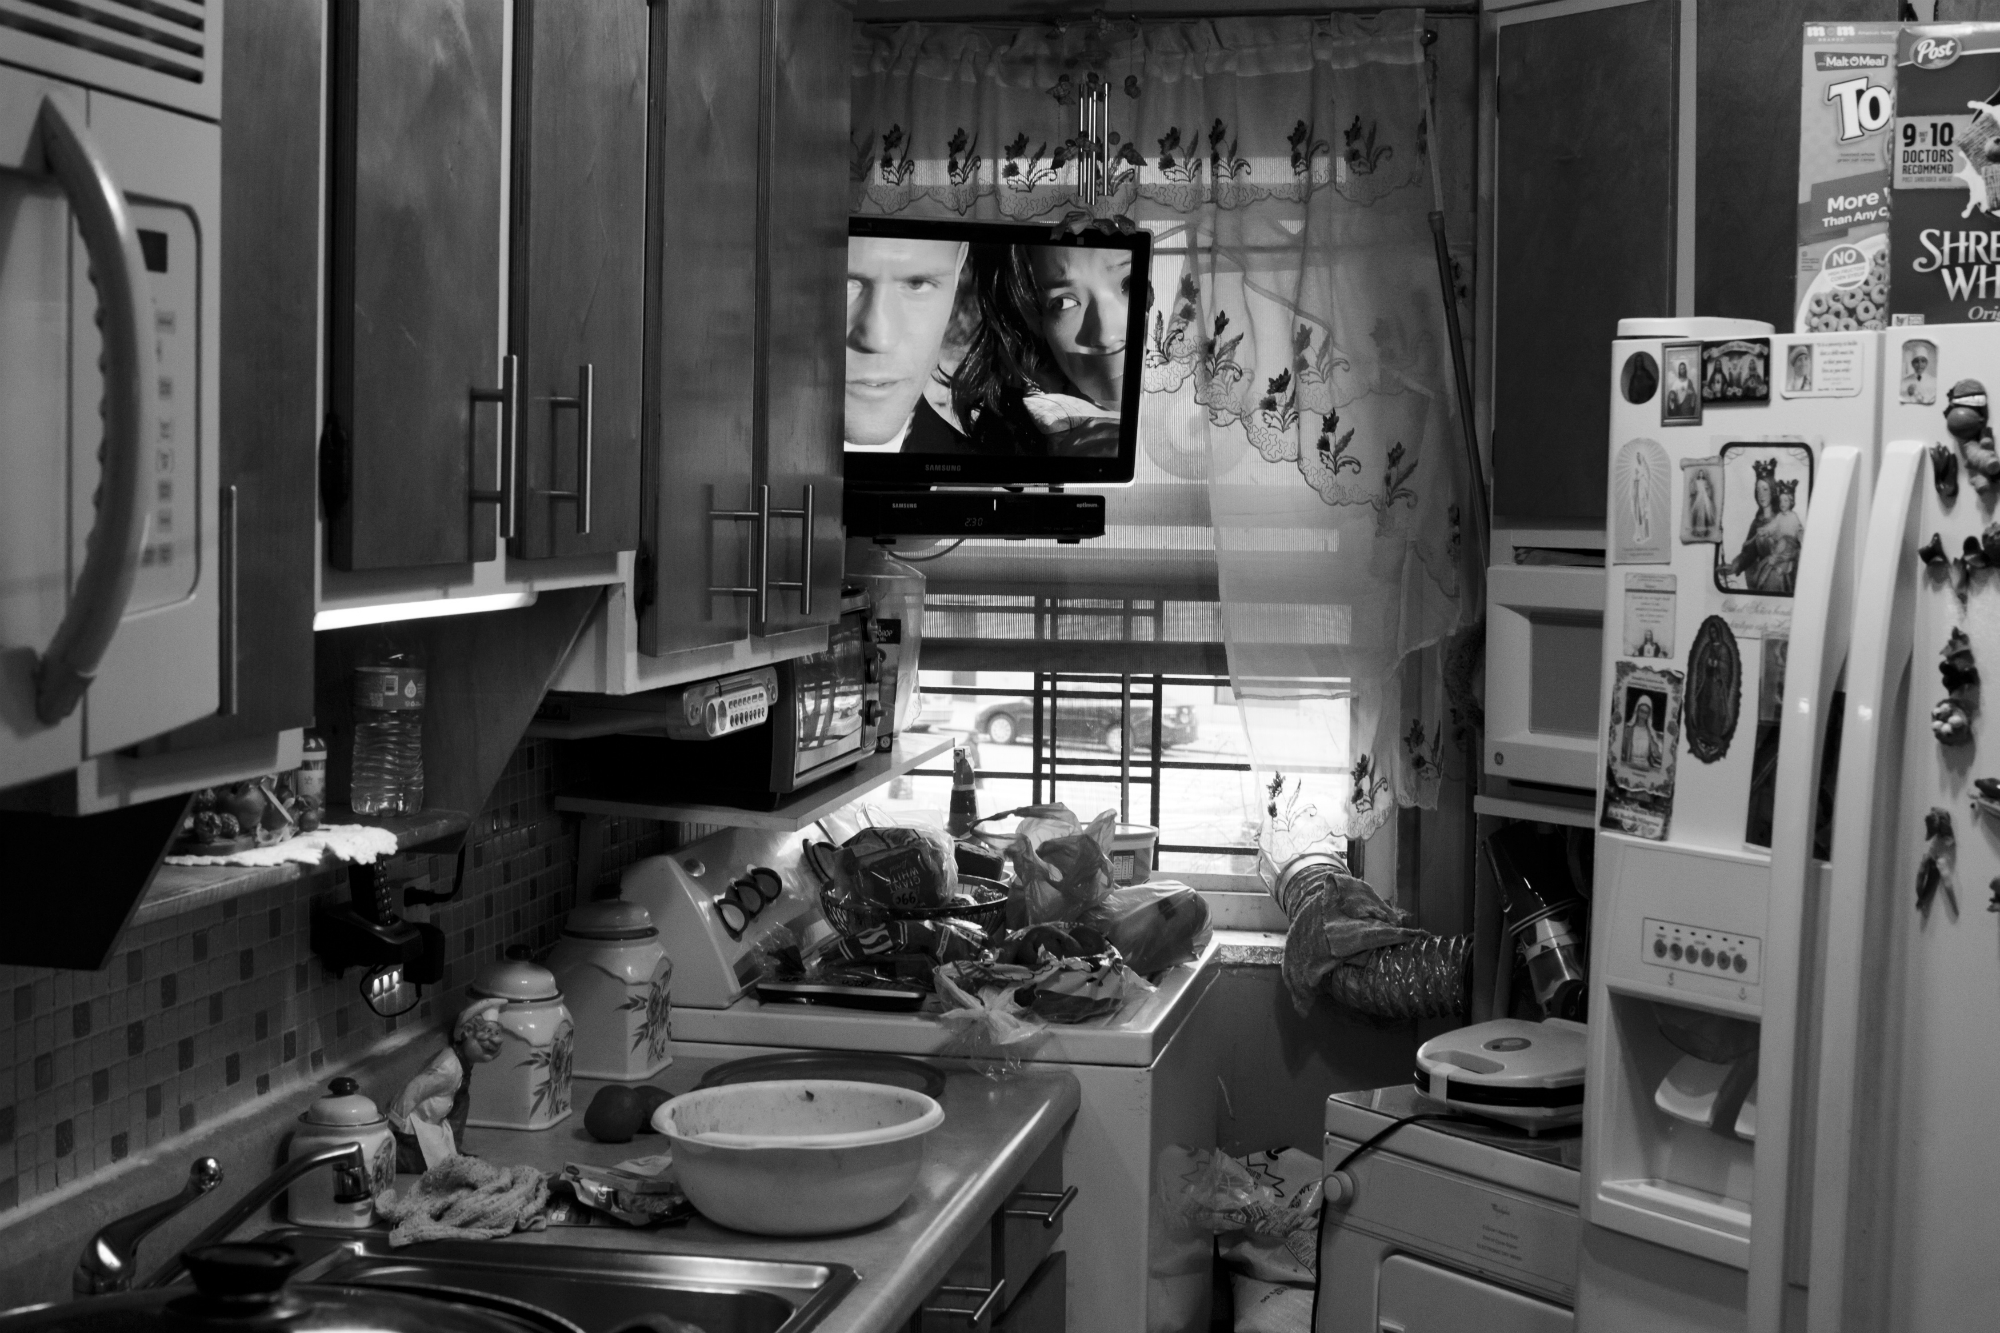 An empty kitchen in the Leons' apartment, Feb. 17, 2016, Patterson Projects, Mott Haven, New York. (Photo by Sarah Blesener/GroundTruth/Alexia Foundation)